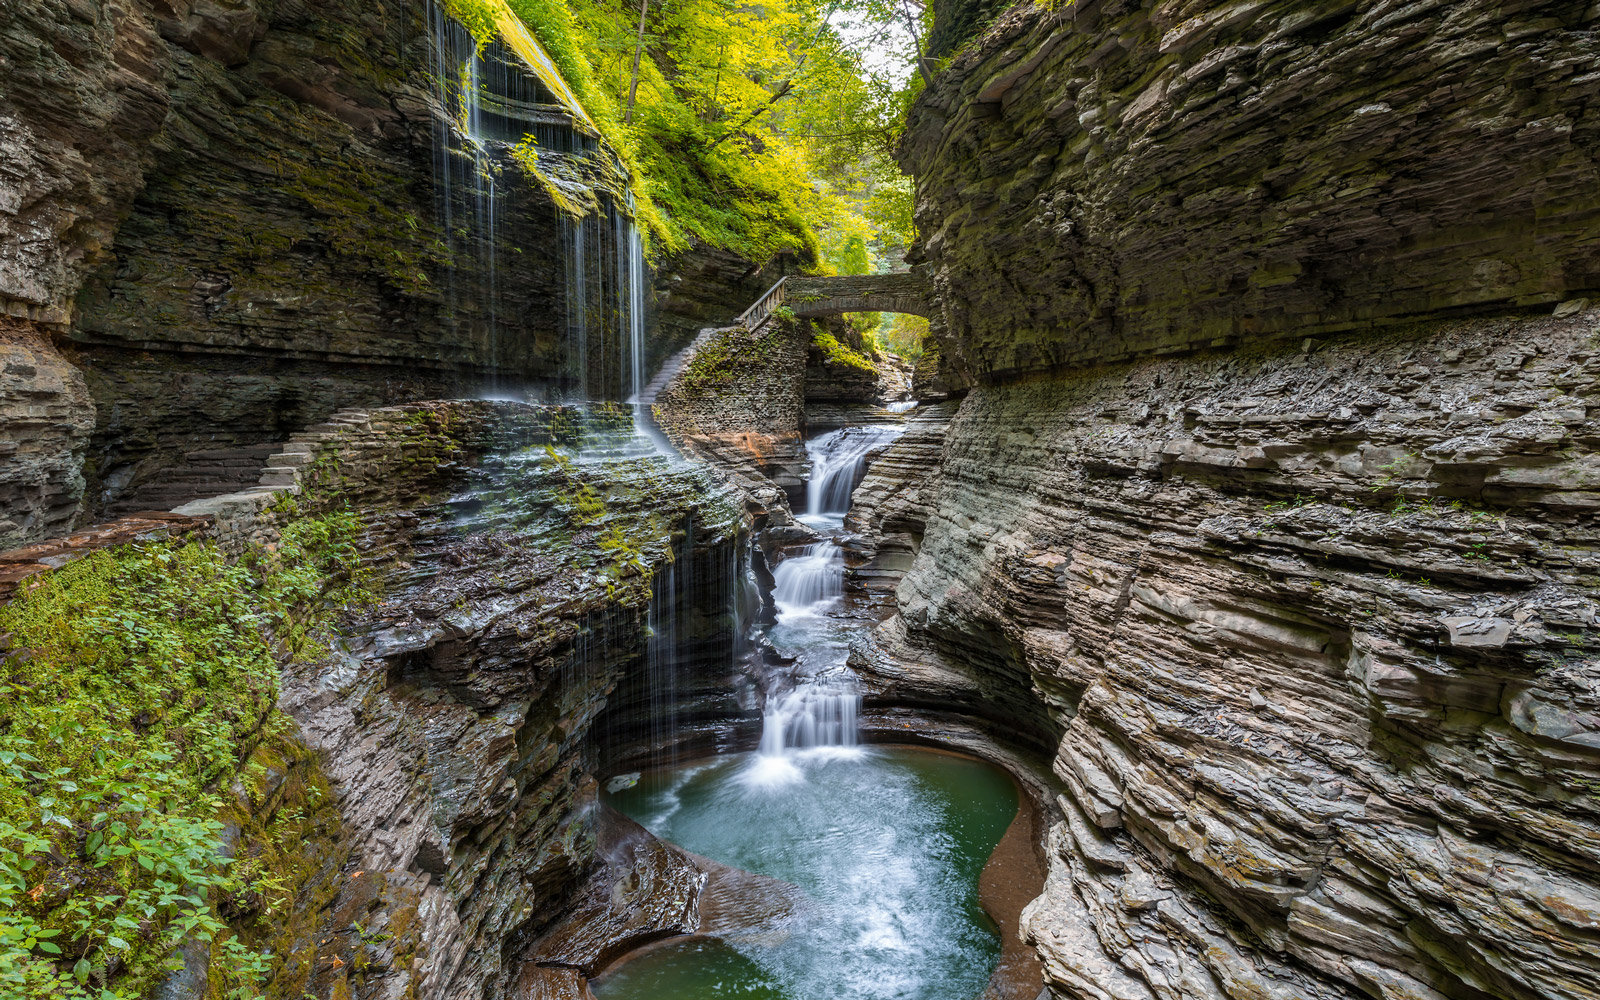 Rainbow Falls of Watkins Glen State Park Finger Lakes region of New York state.